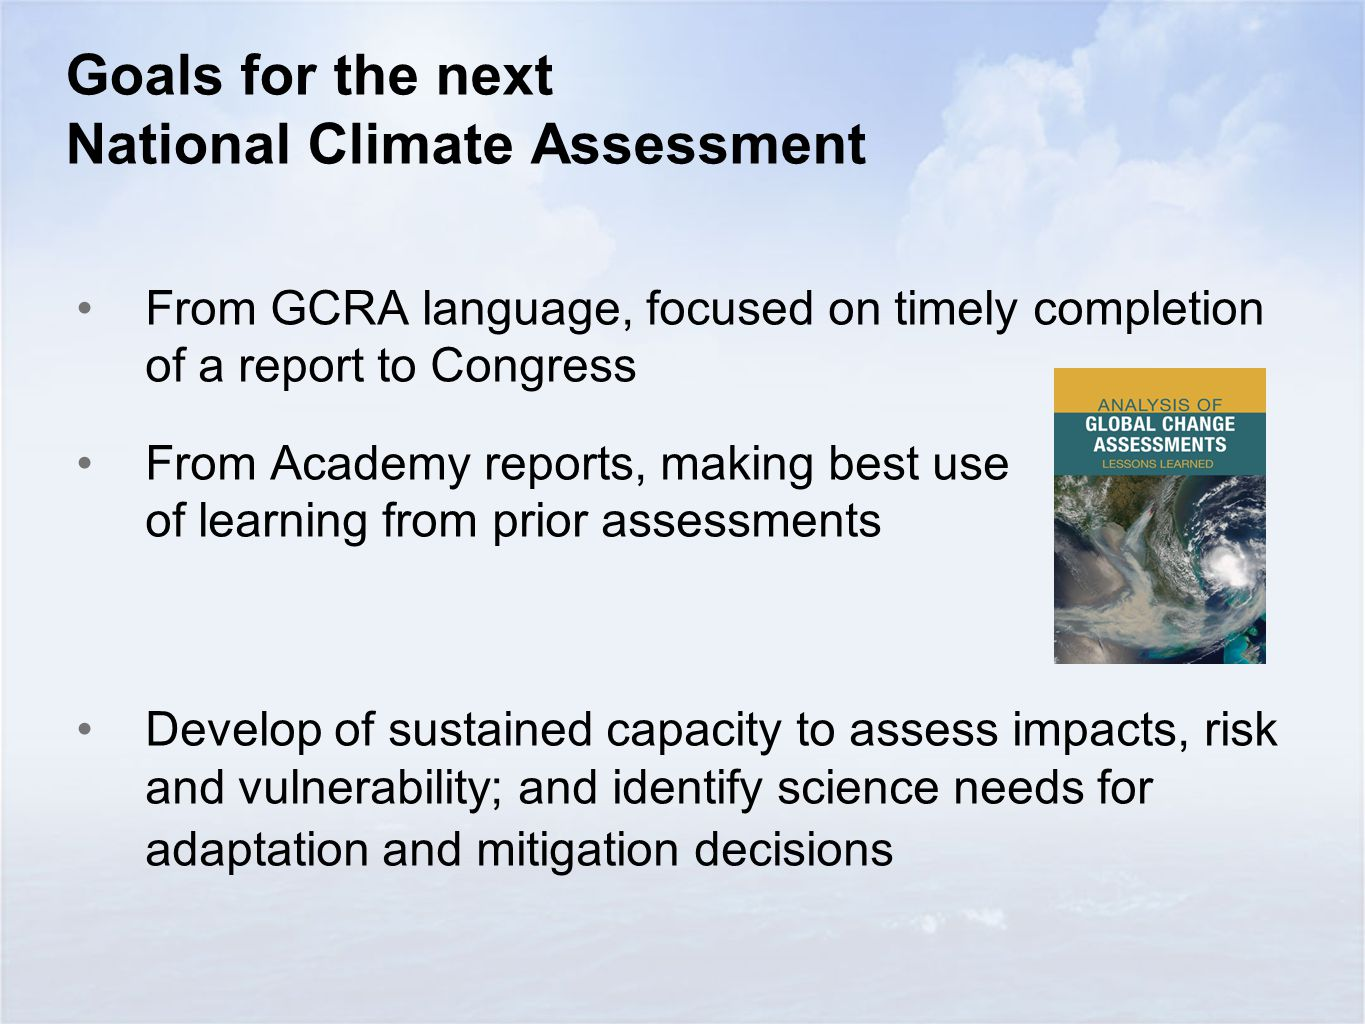 Goals for the next National Climate Assessment From GCRA language, focused on timely completion of a report to Congress From Academy reports, making best use of learning from prior assessments Develop of sustained capacity to assess impacts, risk and vulnerability; and identify science needs for adaptation and mitigation decisions